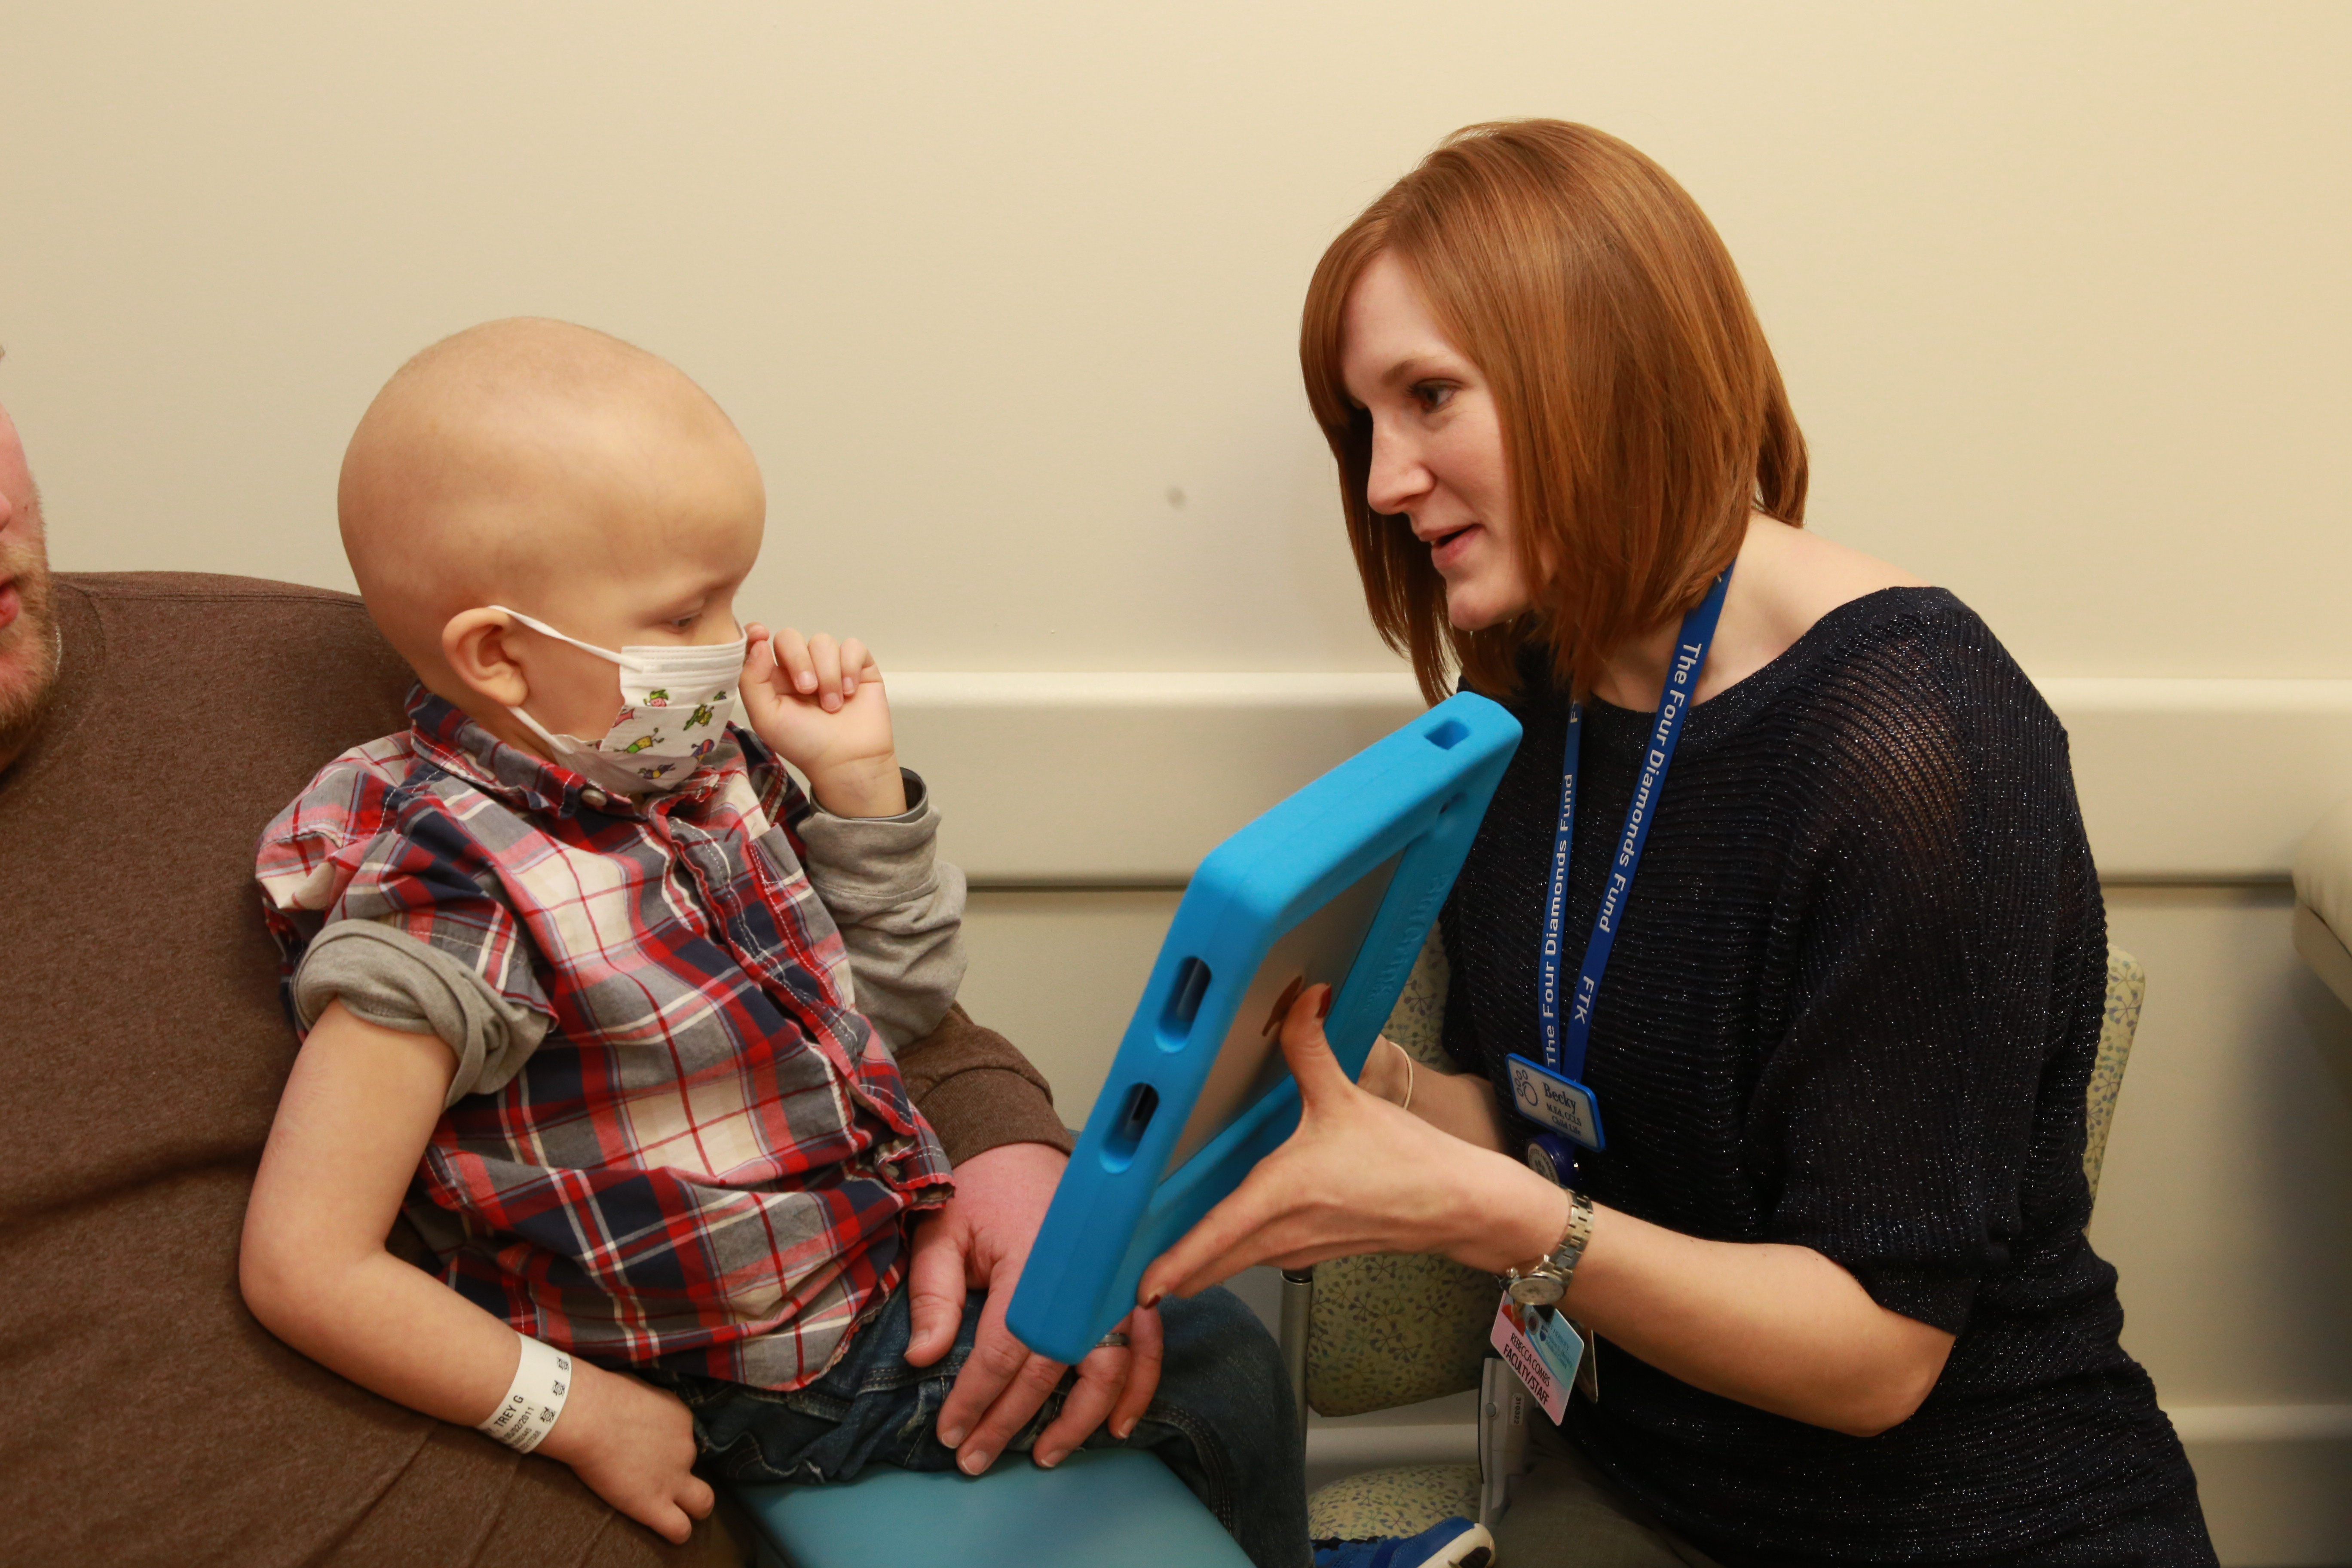 """Becky Combs, certified child life specialist, works to distract Trey Fry, 3, during a visit to Penn State Hershey Children's Hospital. Trey is questioning extra instruments he noticed on the nurse's tray. Becky explains they're not for him and that he's there only for the catheter changer he's been told about. """"No surprises, remember?"""" she says."""